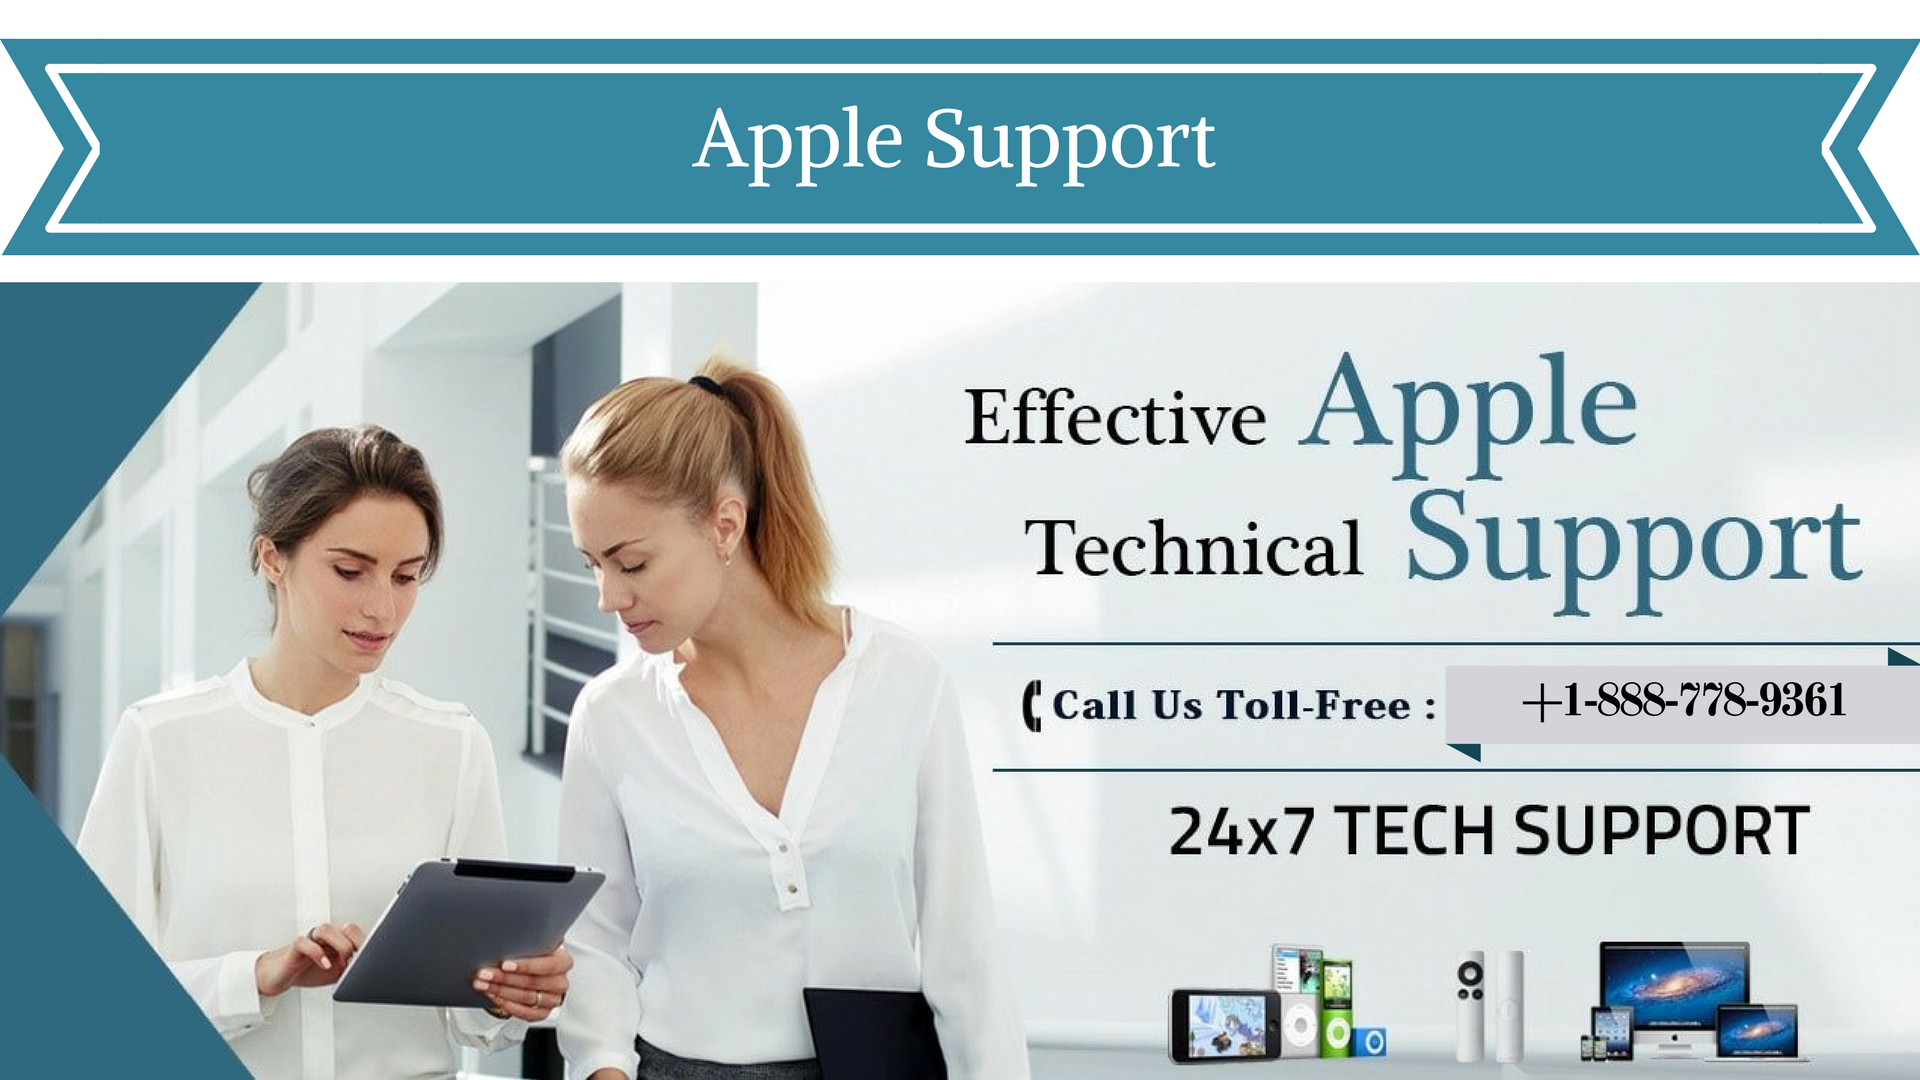 apple help desk phone number examples and forms 87894